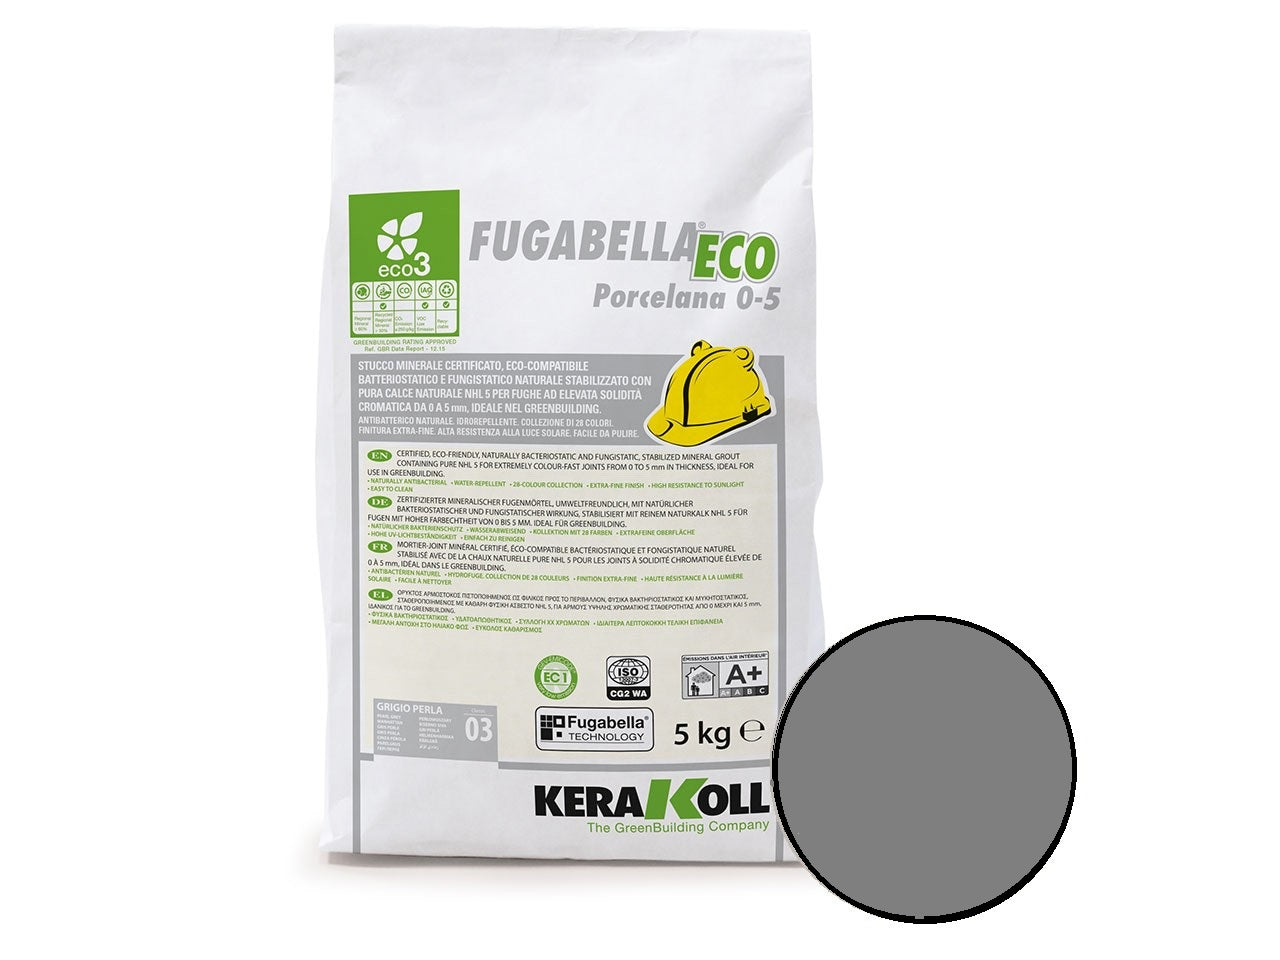 Kerakoll Fugabella Eco Flexible Grout Dark Grey 5kg